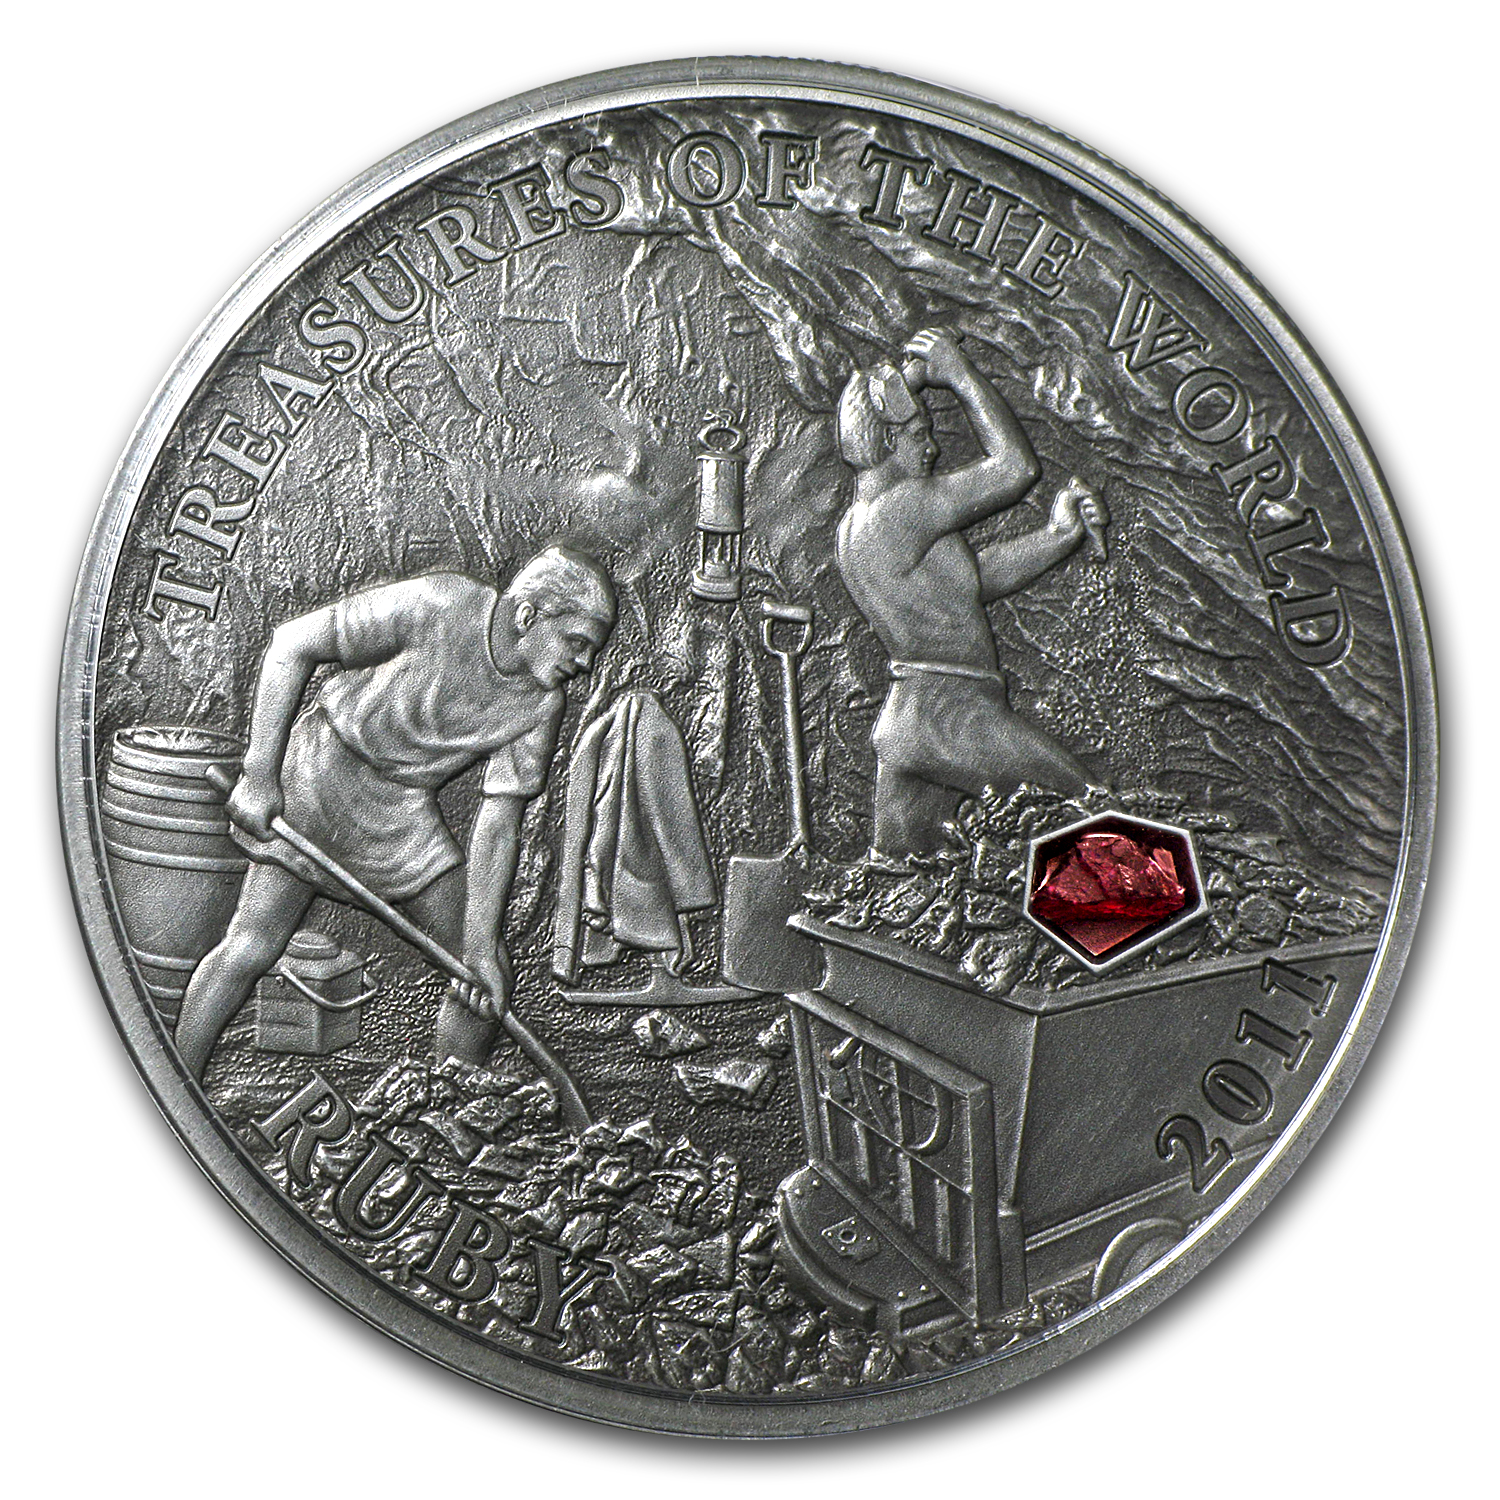 2011 Palau Proof Silver $5 Treasures of the World Ruby